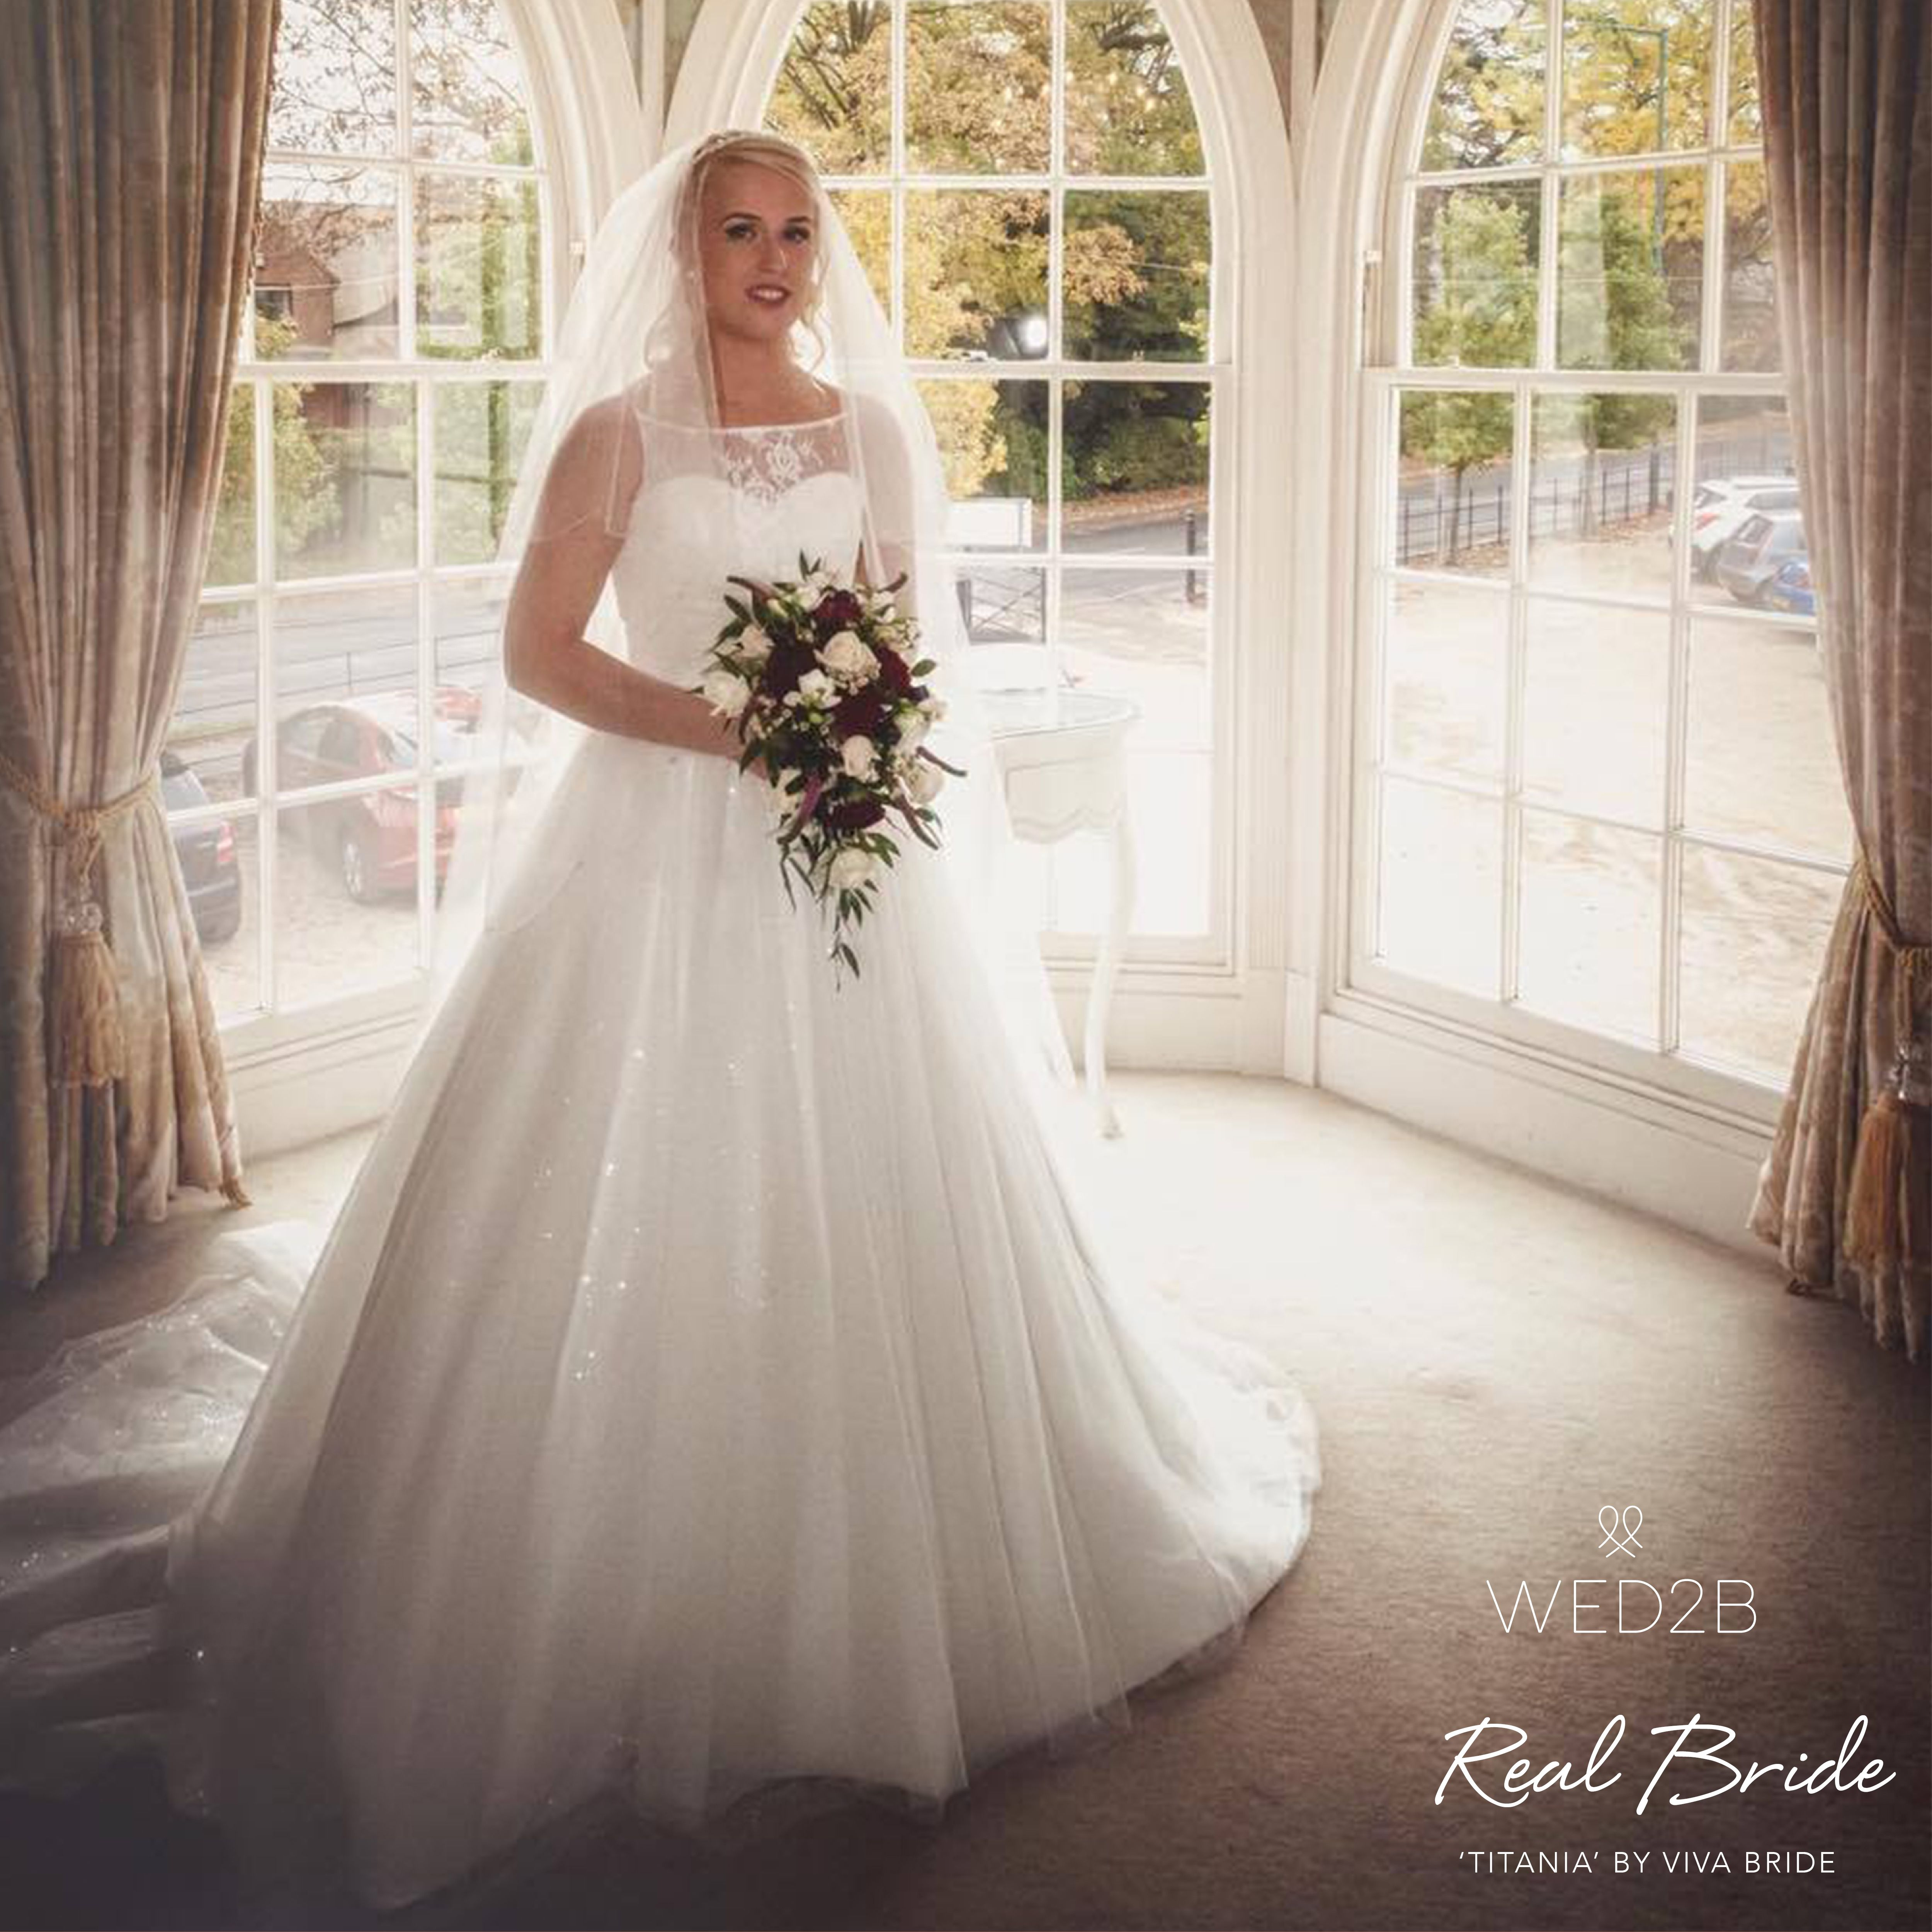 Real Brides Wed2b: We Love This Photo Of Real Bride Beckiee Who Looks